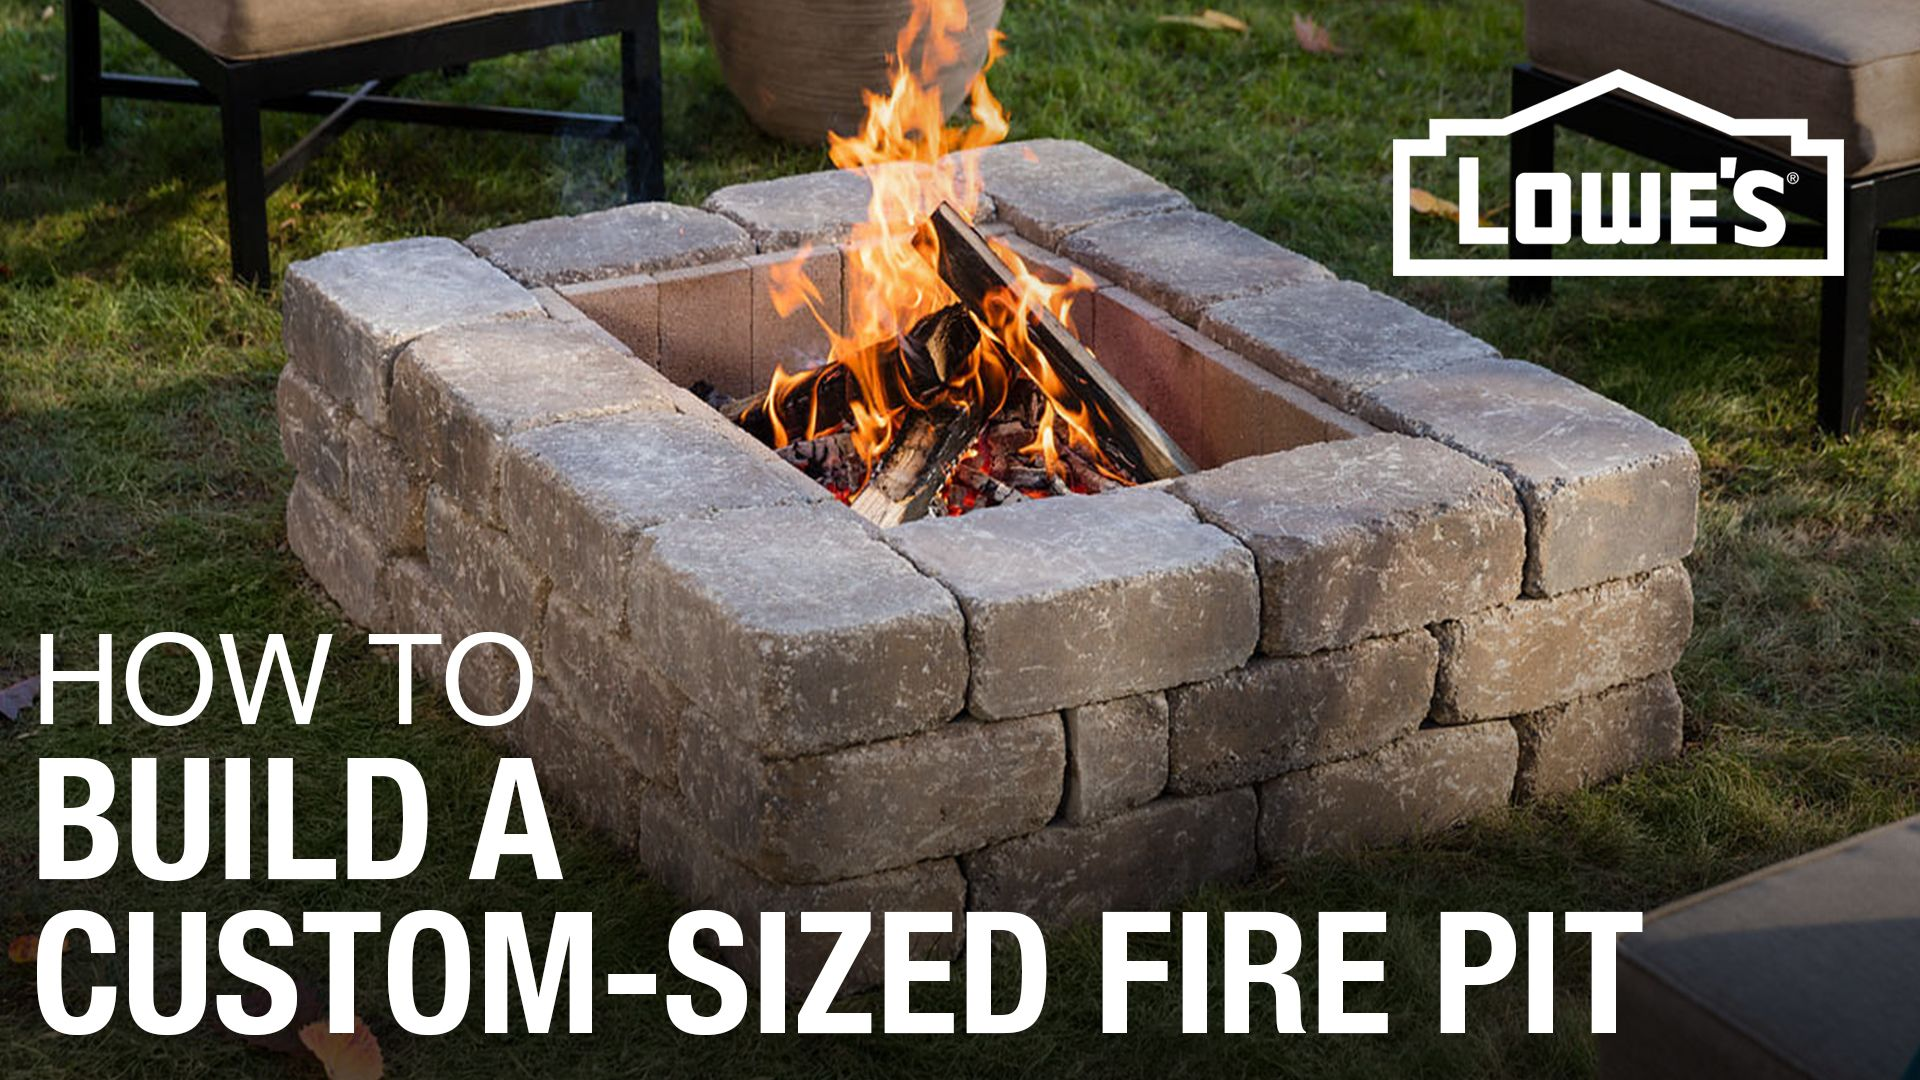 ht how to build a custom sized fire pit hero